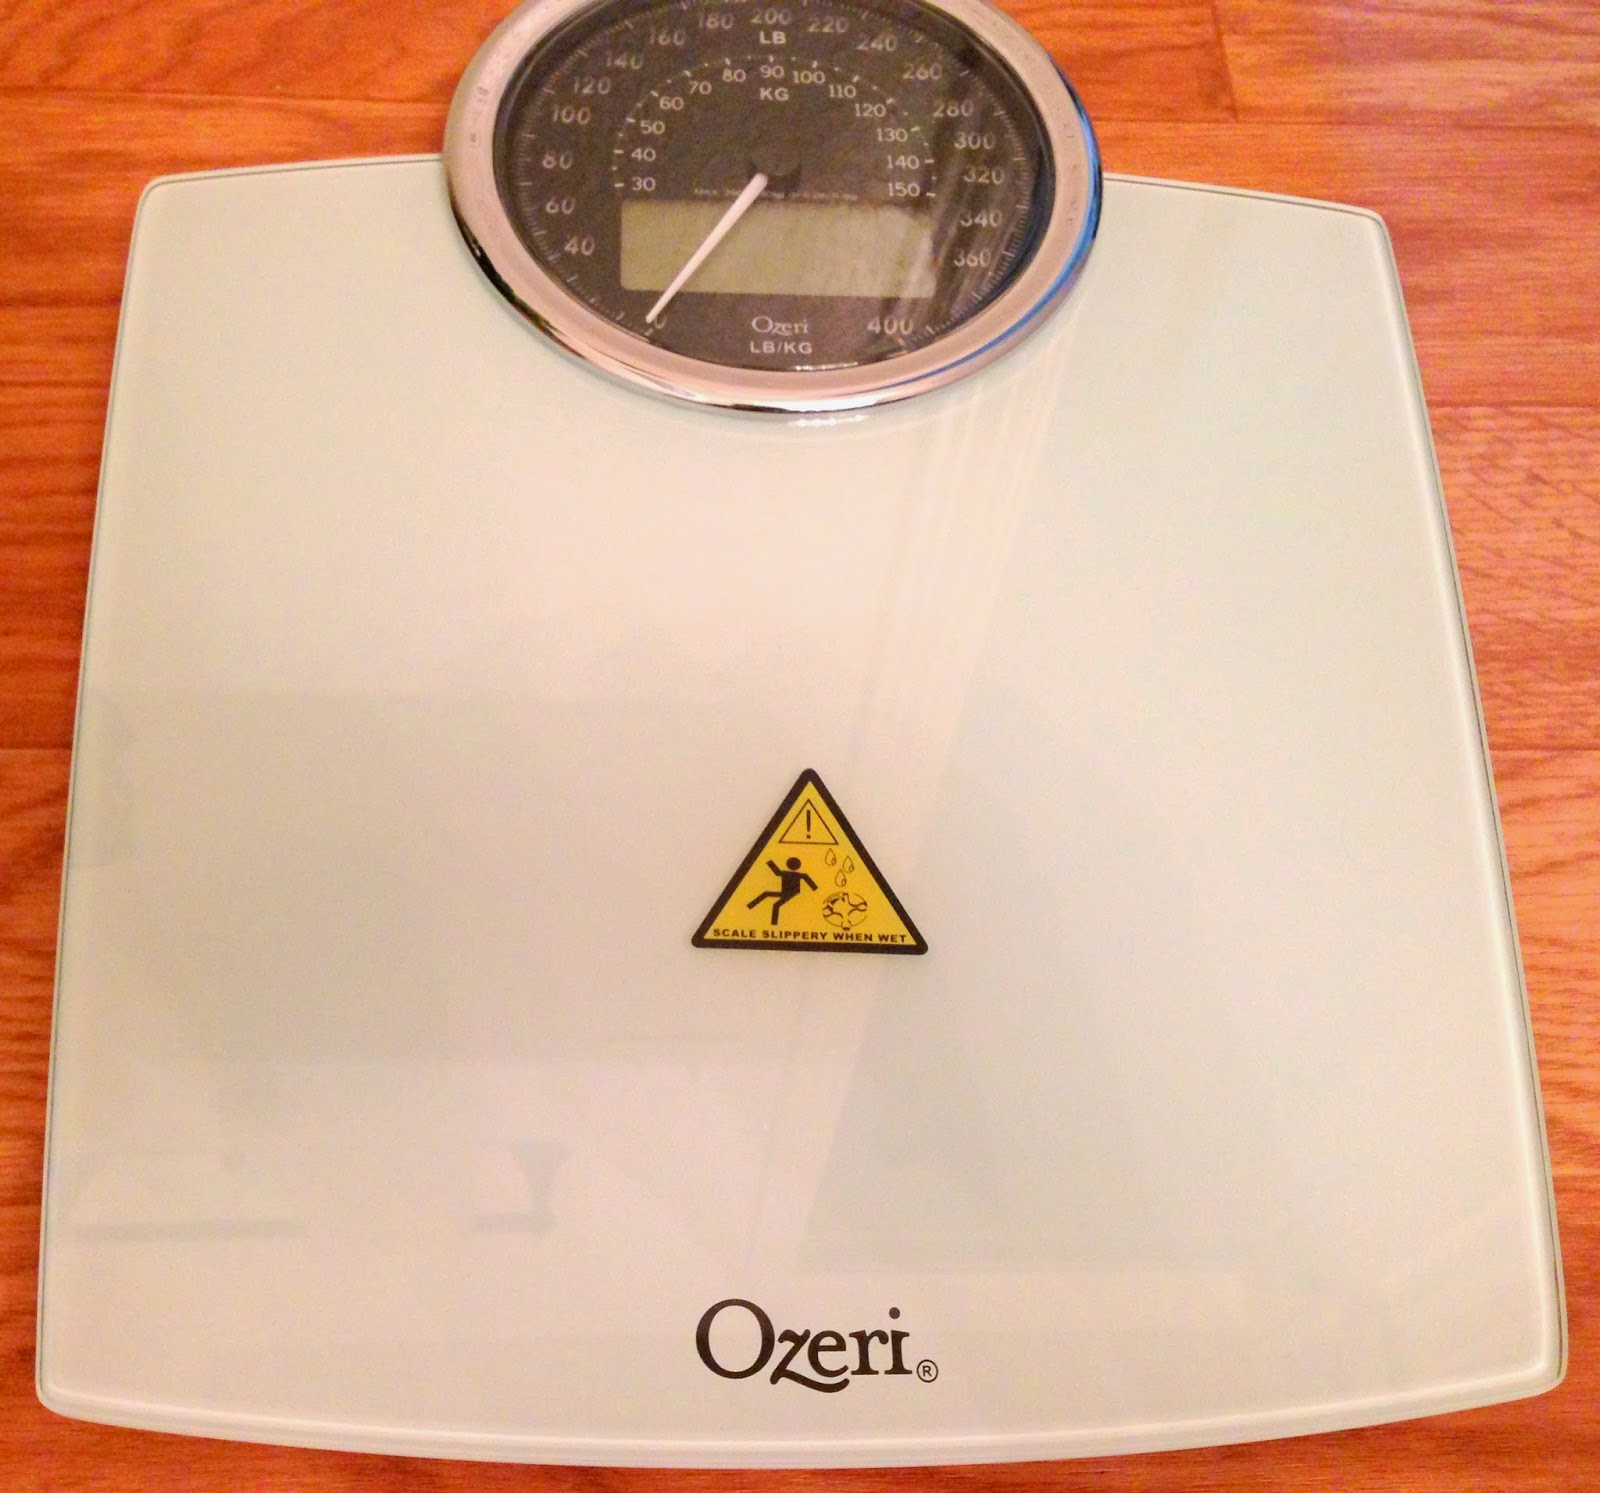 Most Accurate Bathroom Scale 2014: Life's Perception & Inspiration: #Ozeri Digital Bathroom